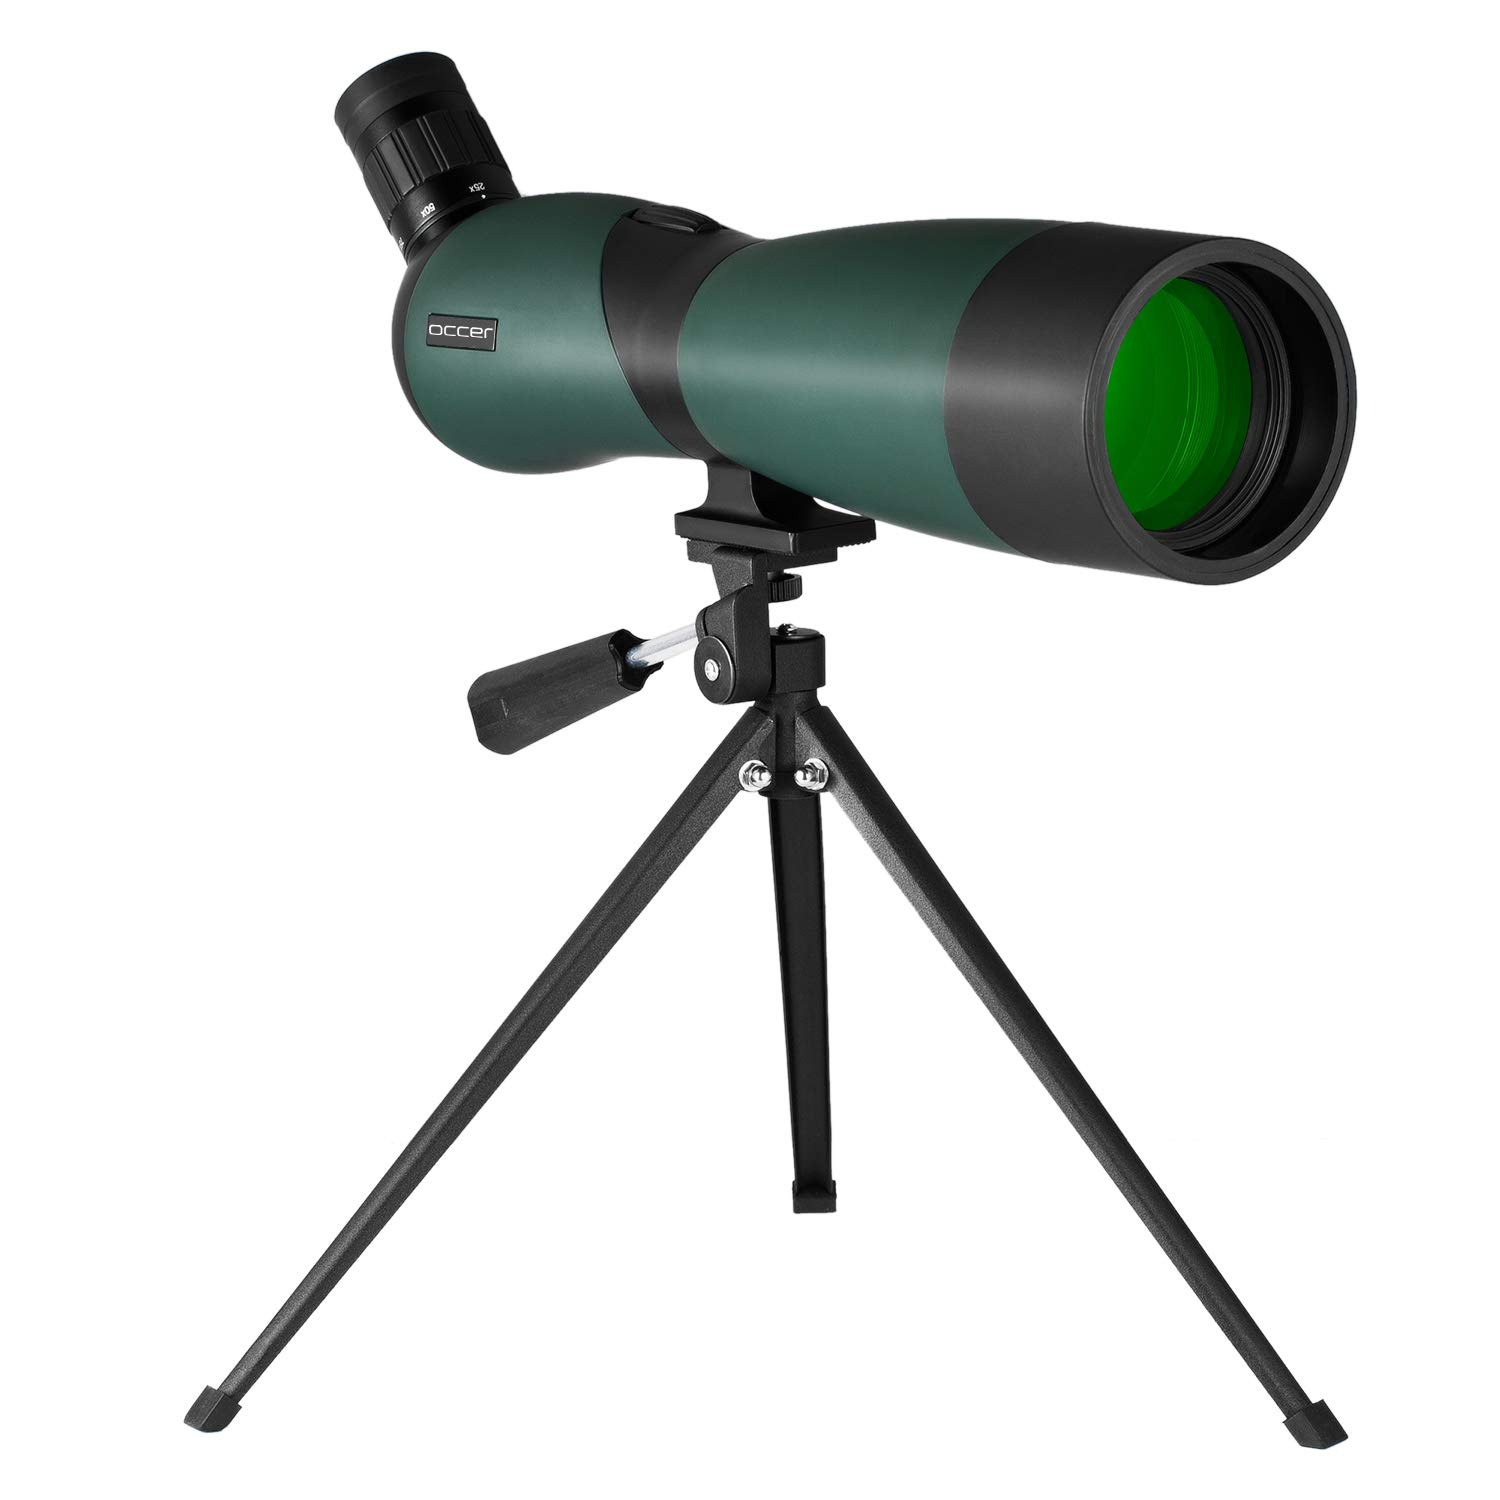 occer 25-75x70 Spotting Scope Telescope with Tripod,Long Eye Relief 45 Degree Angled Eyepiece Scopes,Waterproof Spotter Scope for Hunting,Target Shooting,Bird Watching,Archery,Wildlife-with Carry Case by occer